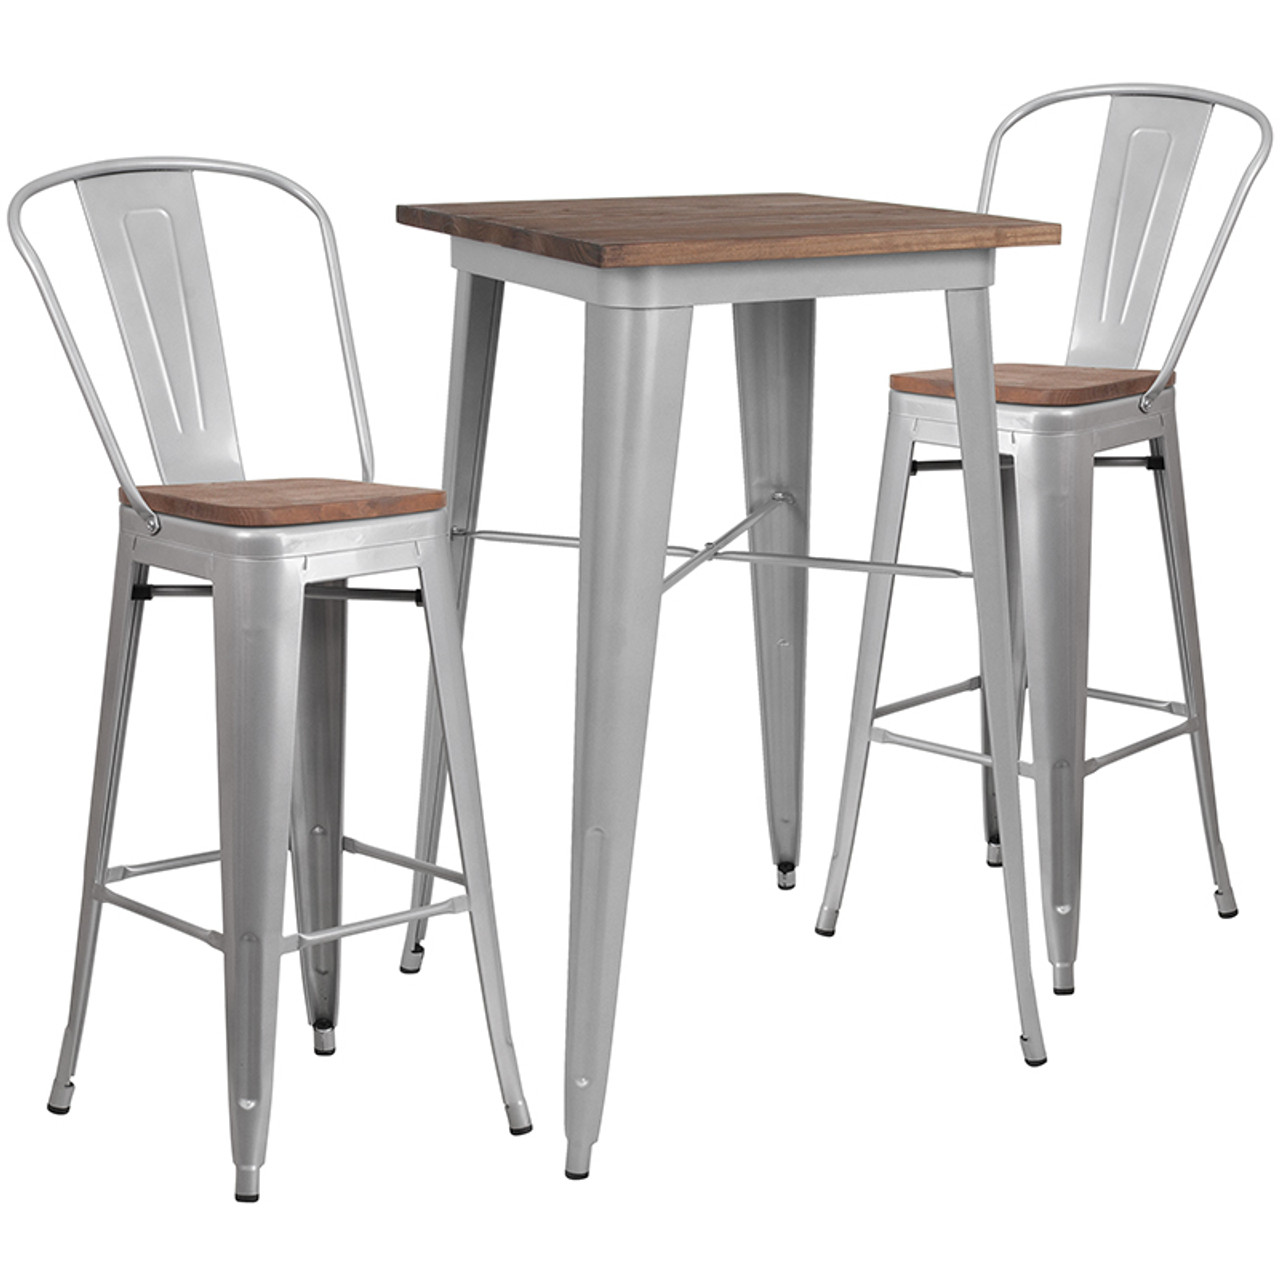 Wood Colorful Bar Table and Stool Sets